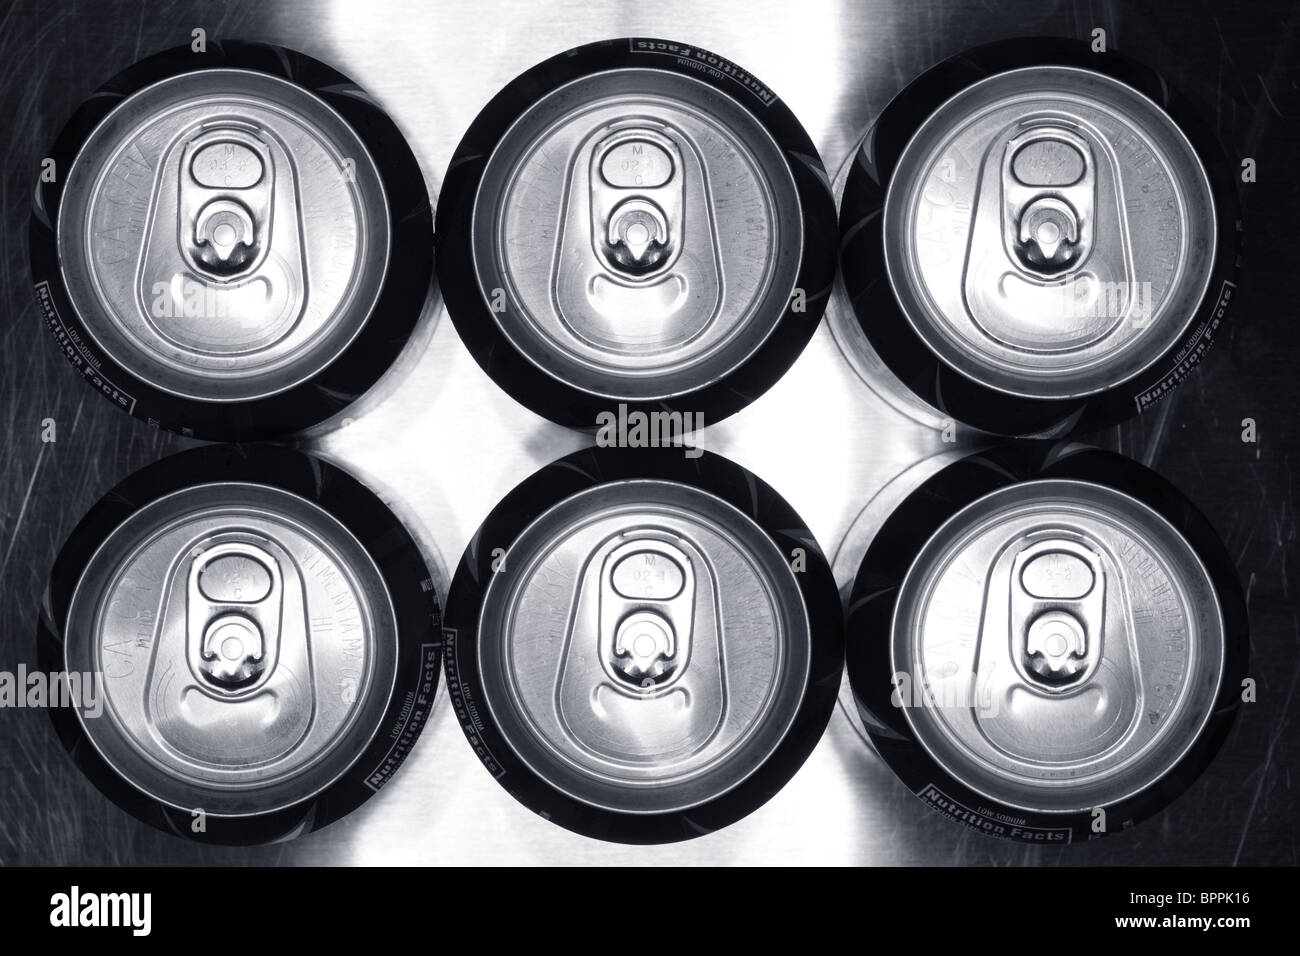 Six pack of Aluminum cans - Stock Image